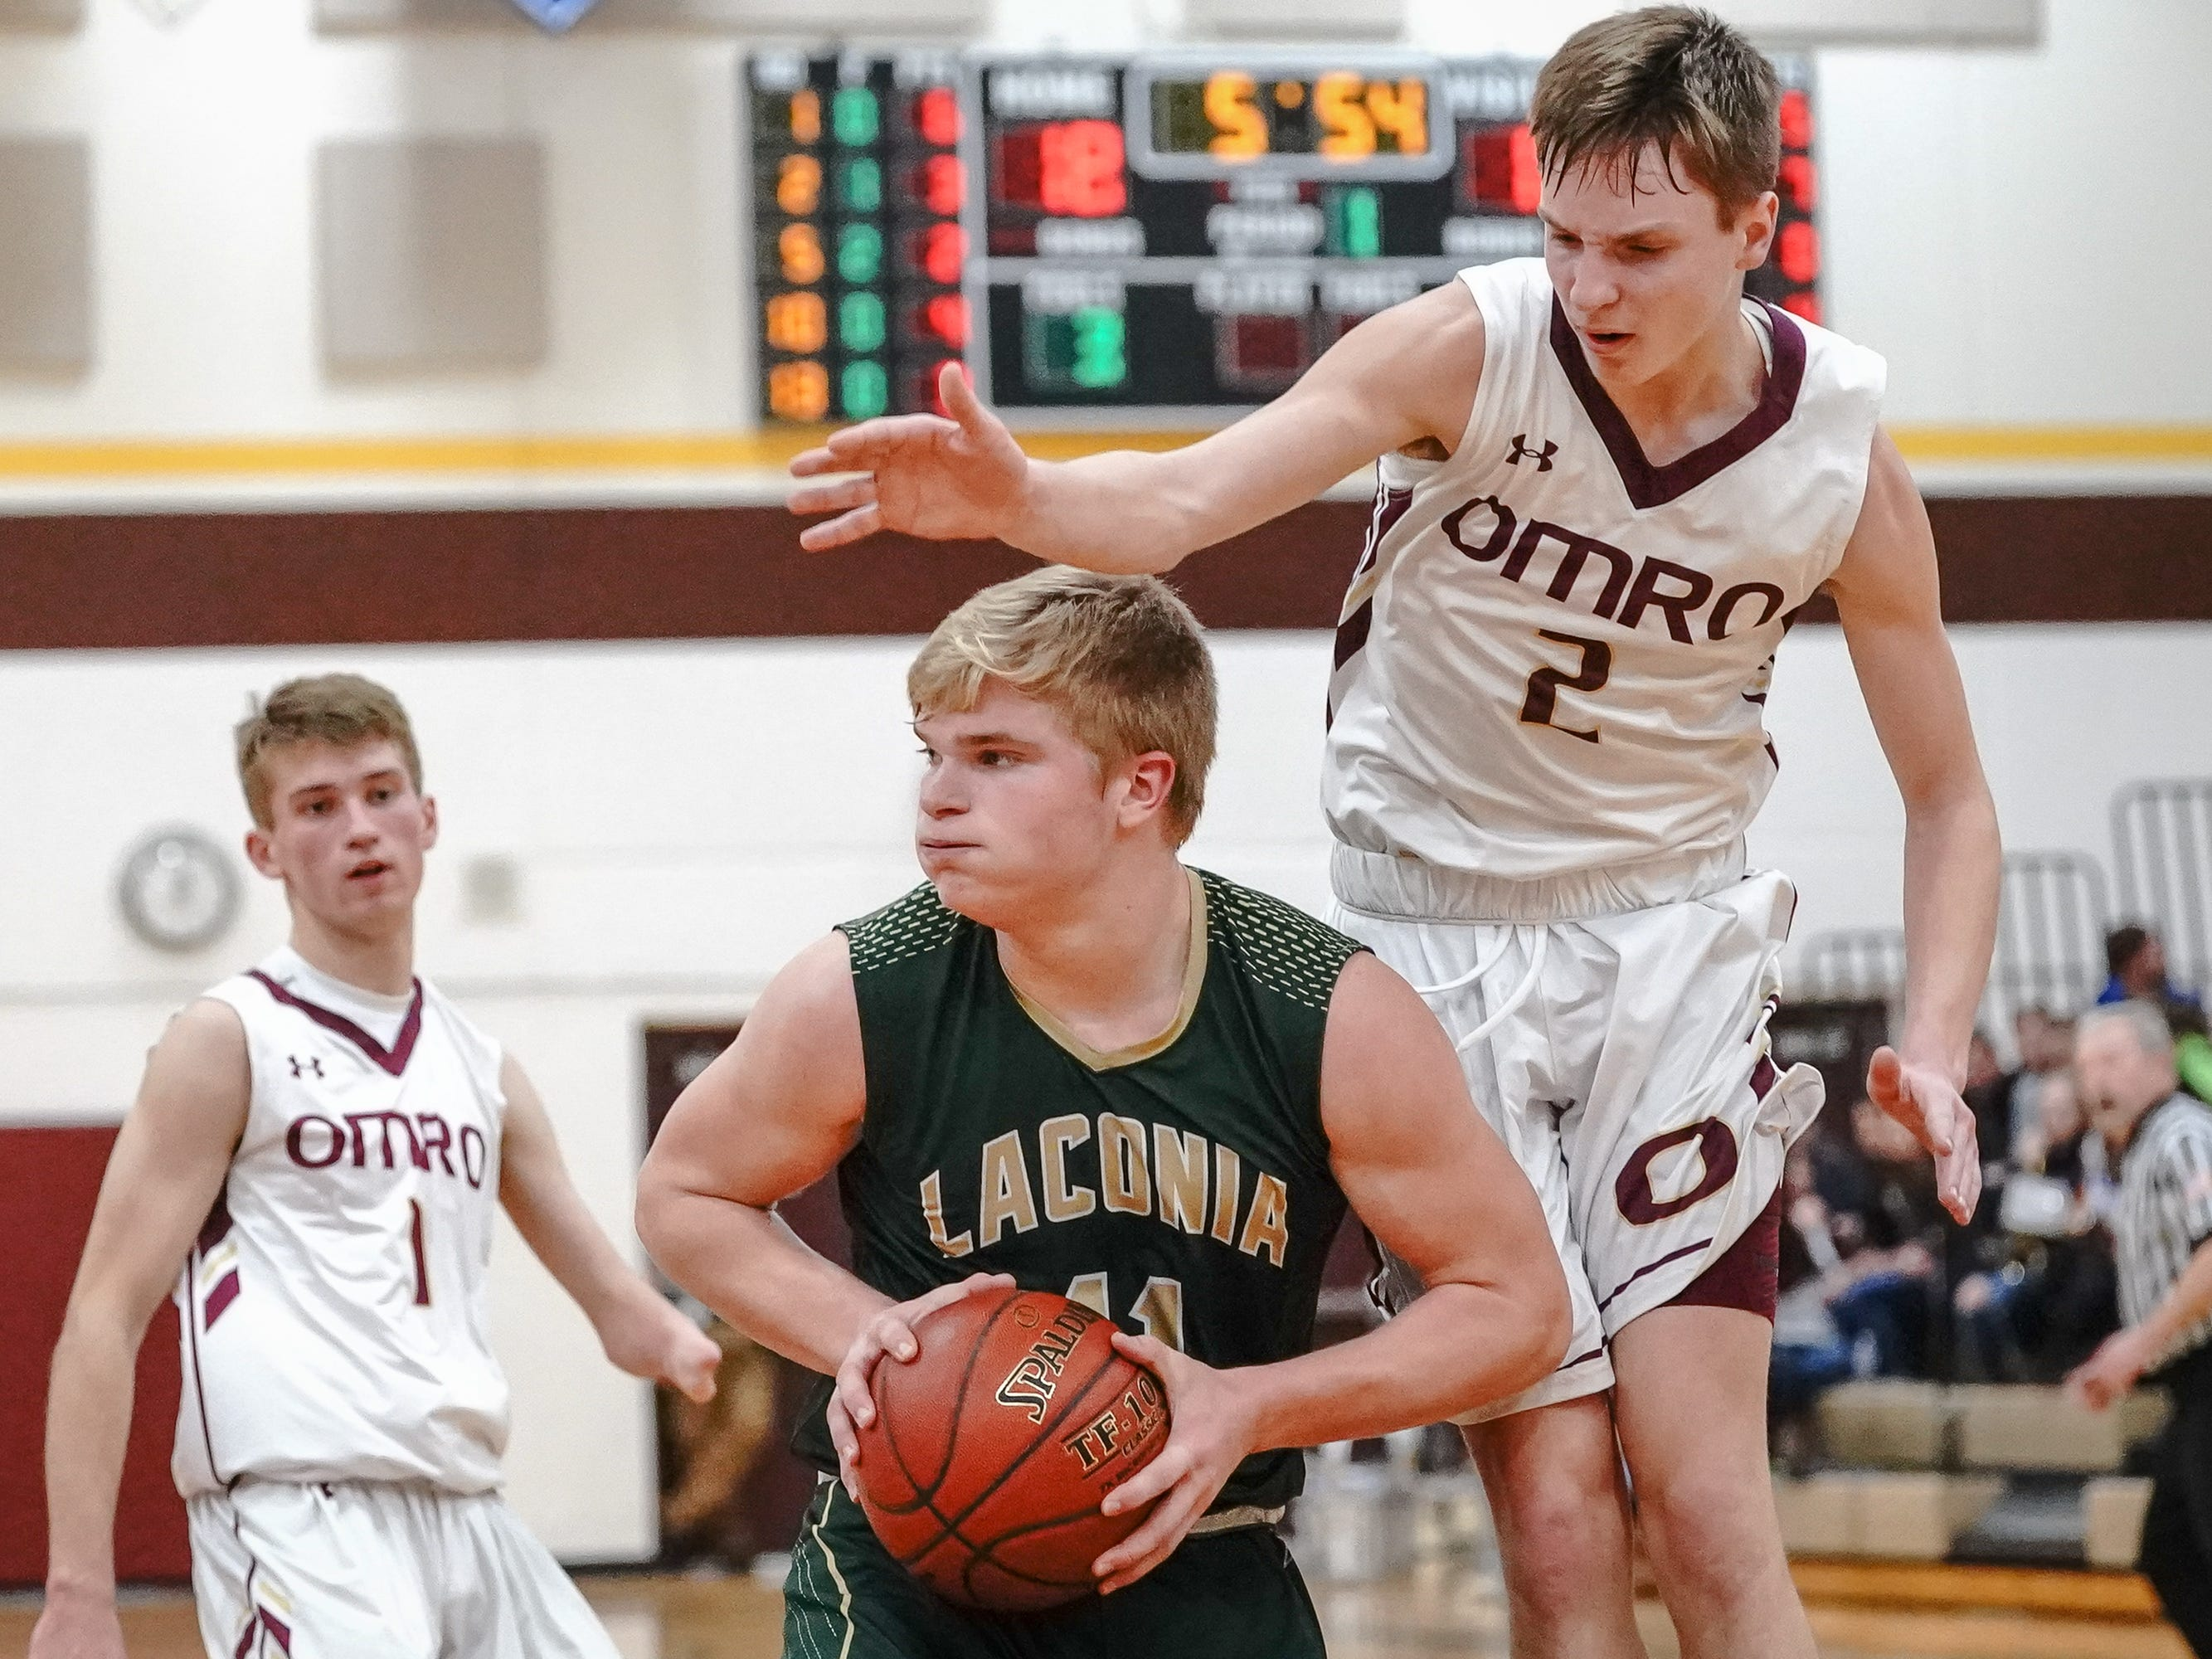 Carter Huth (2) of Omro tries to block Eli Leonard (11) of Laconia.  The Omro Foxes hosted the Laconia Spartans in a Flyway Conference basketball game Friday evening, January 11, 2019.